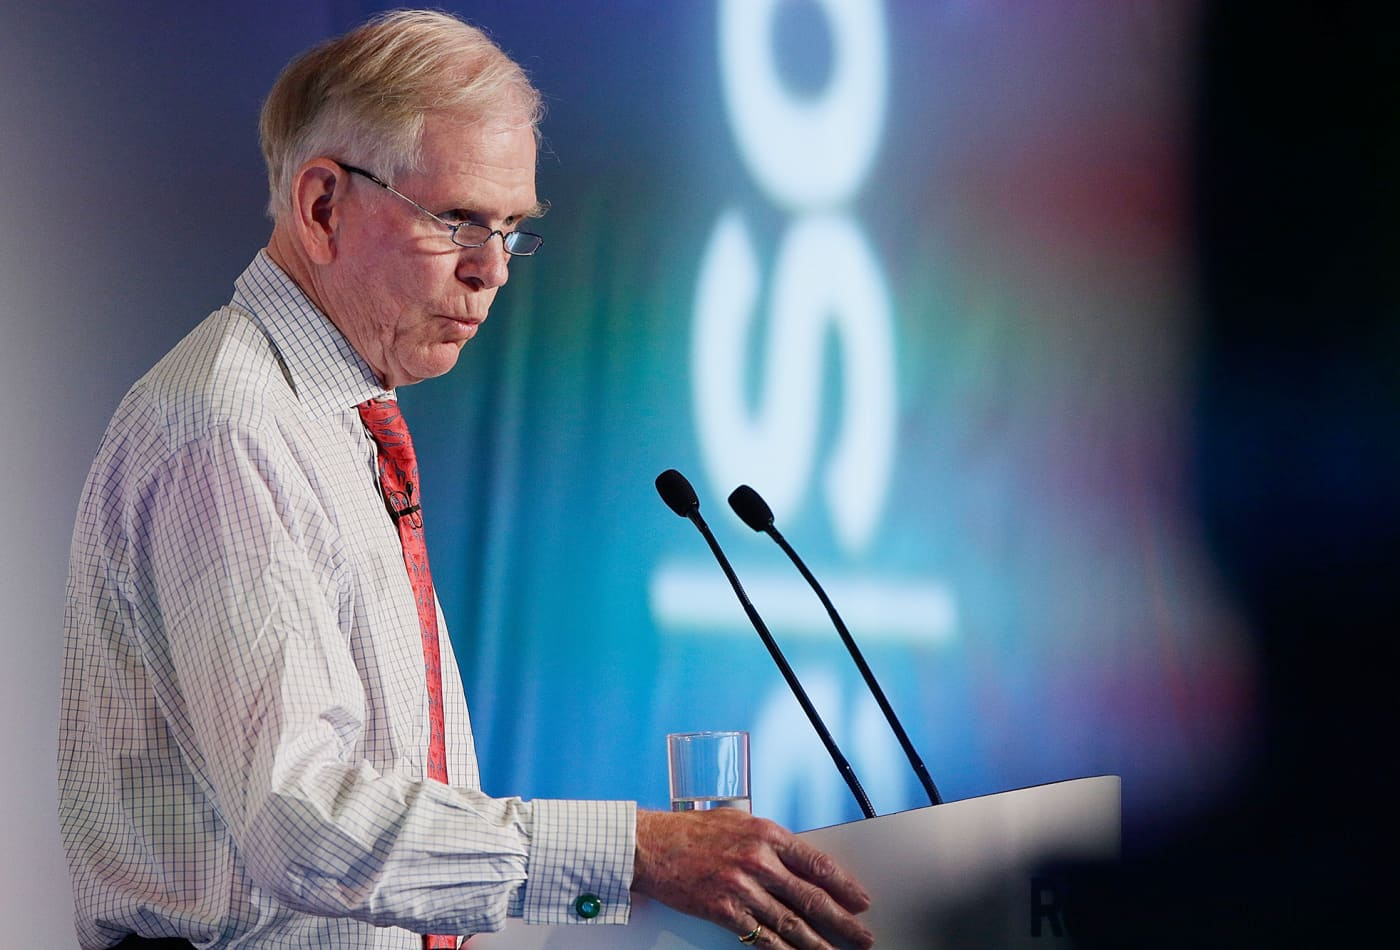 Jeremy Grantham warns eventually only the rich will procreate as chemicals leave the poor sterile